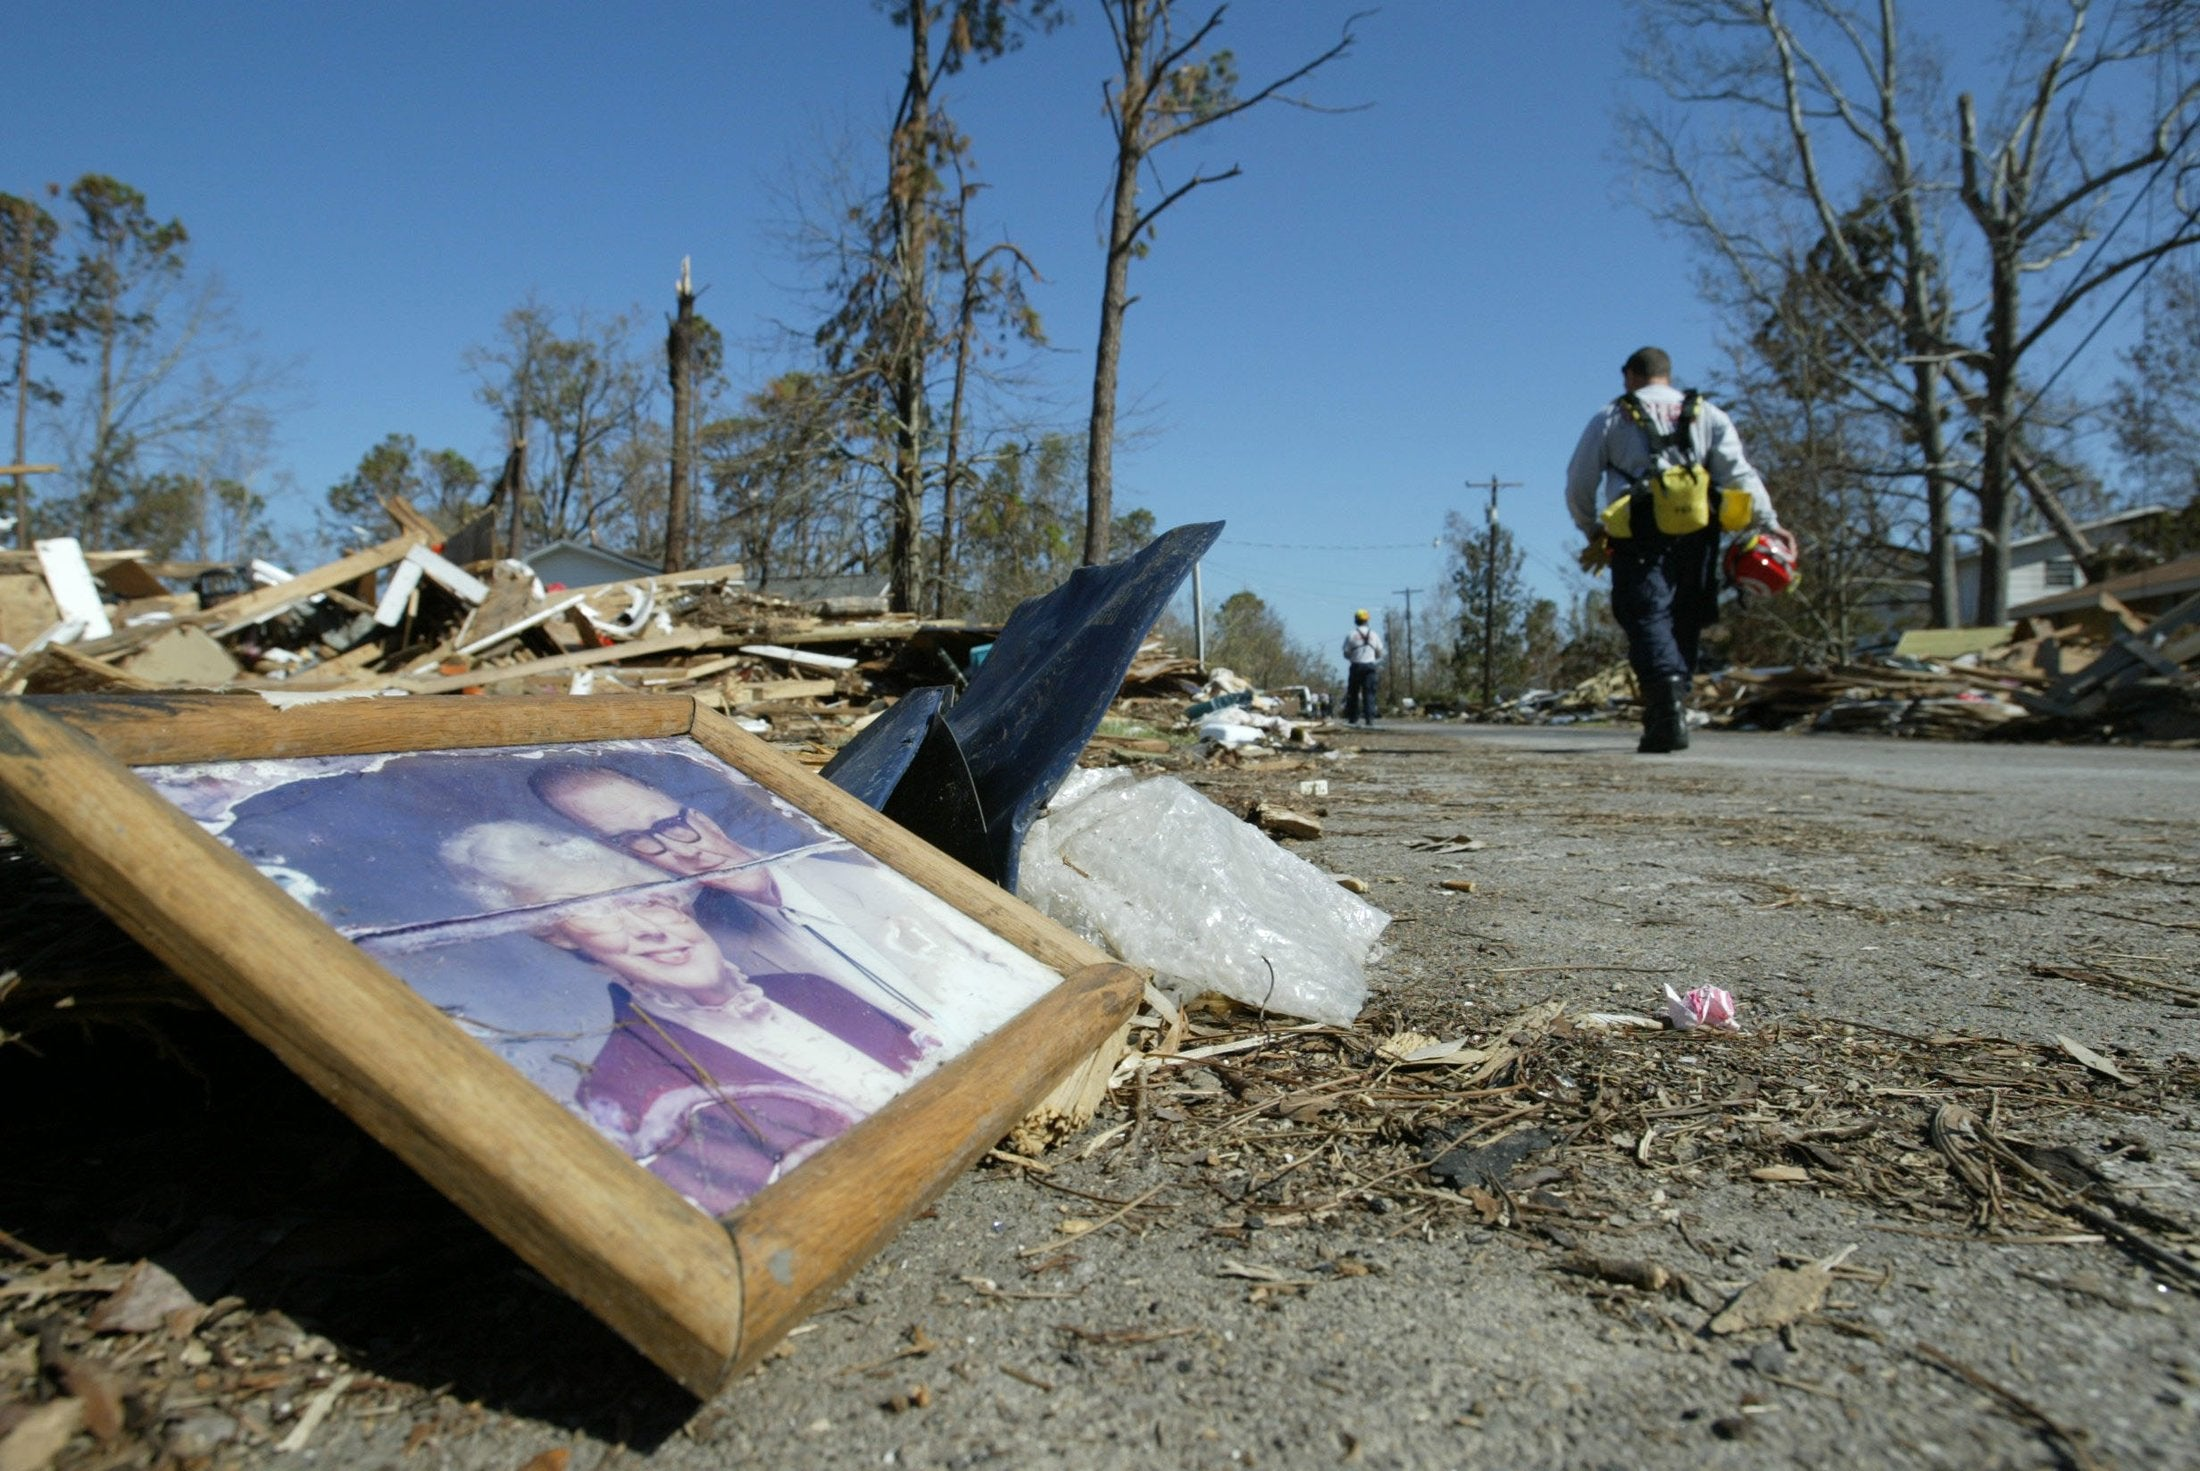 19 Stunning Pictures of Hurricane Katrina's Aftermath